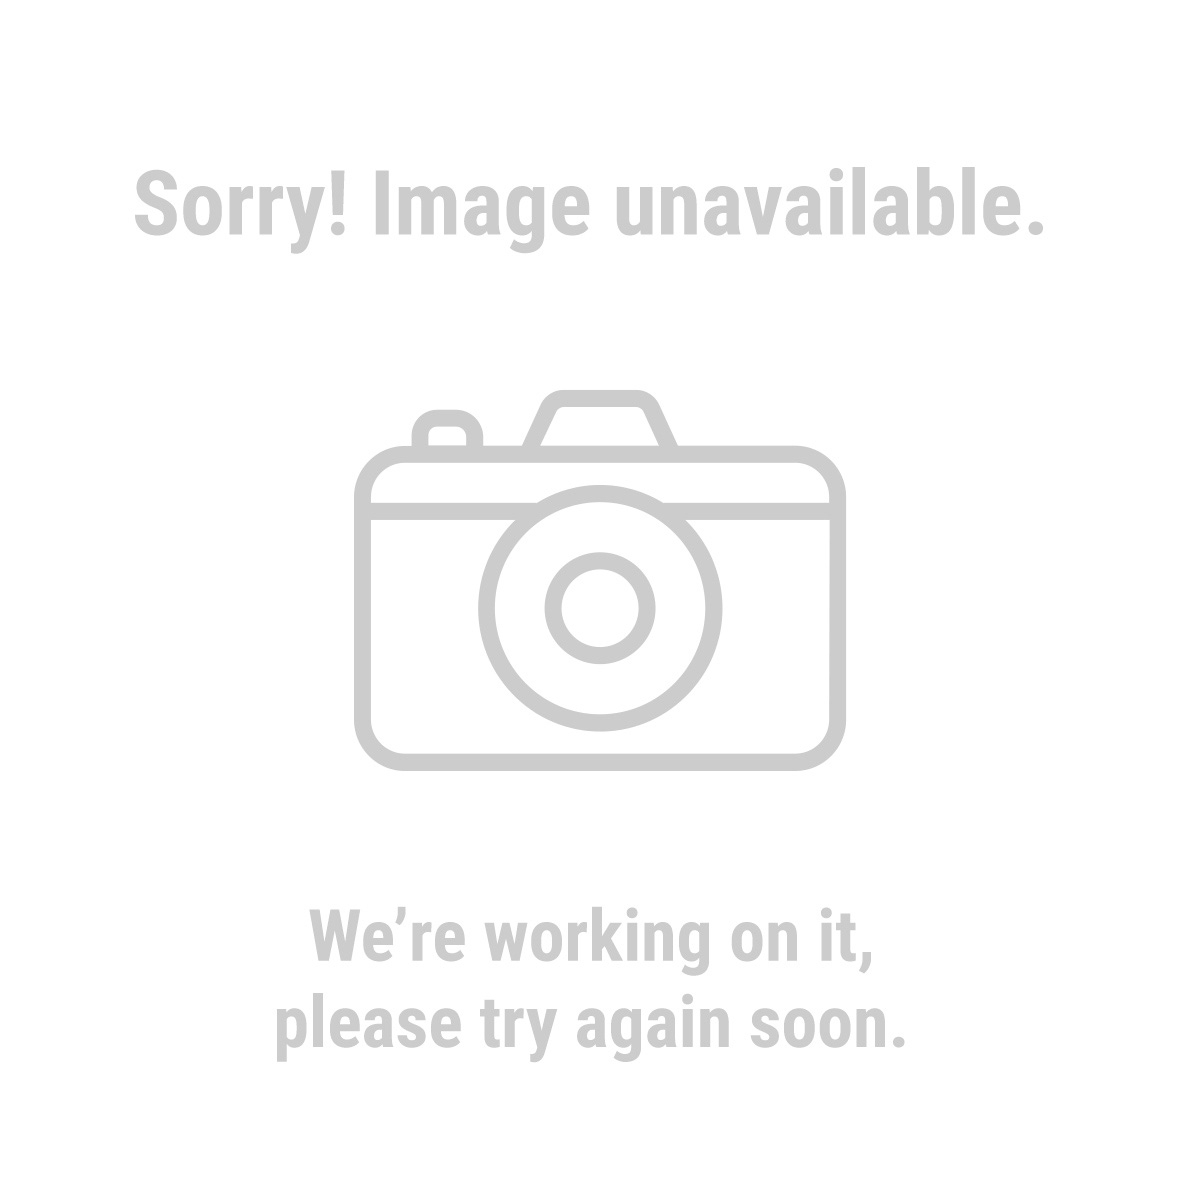 5 Piece Industrial Series Air Tool Quick Coupler and Plug Set